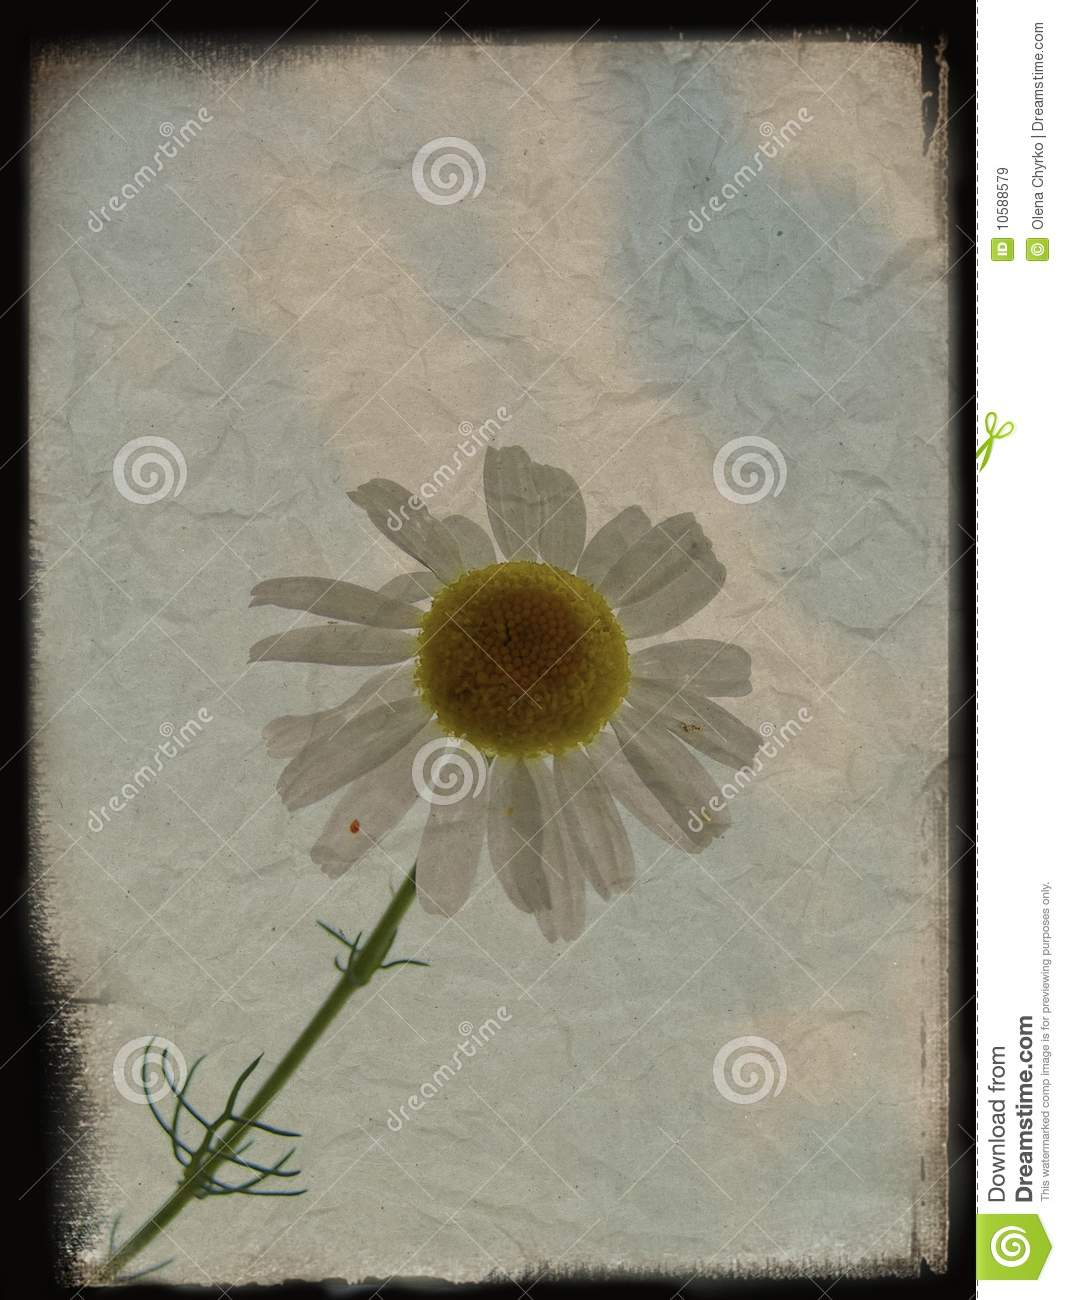 flower background with structure - photo #38